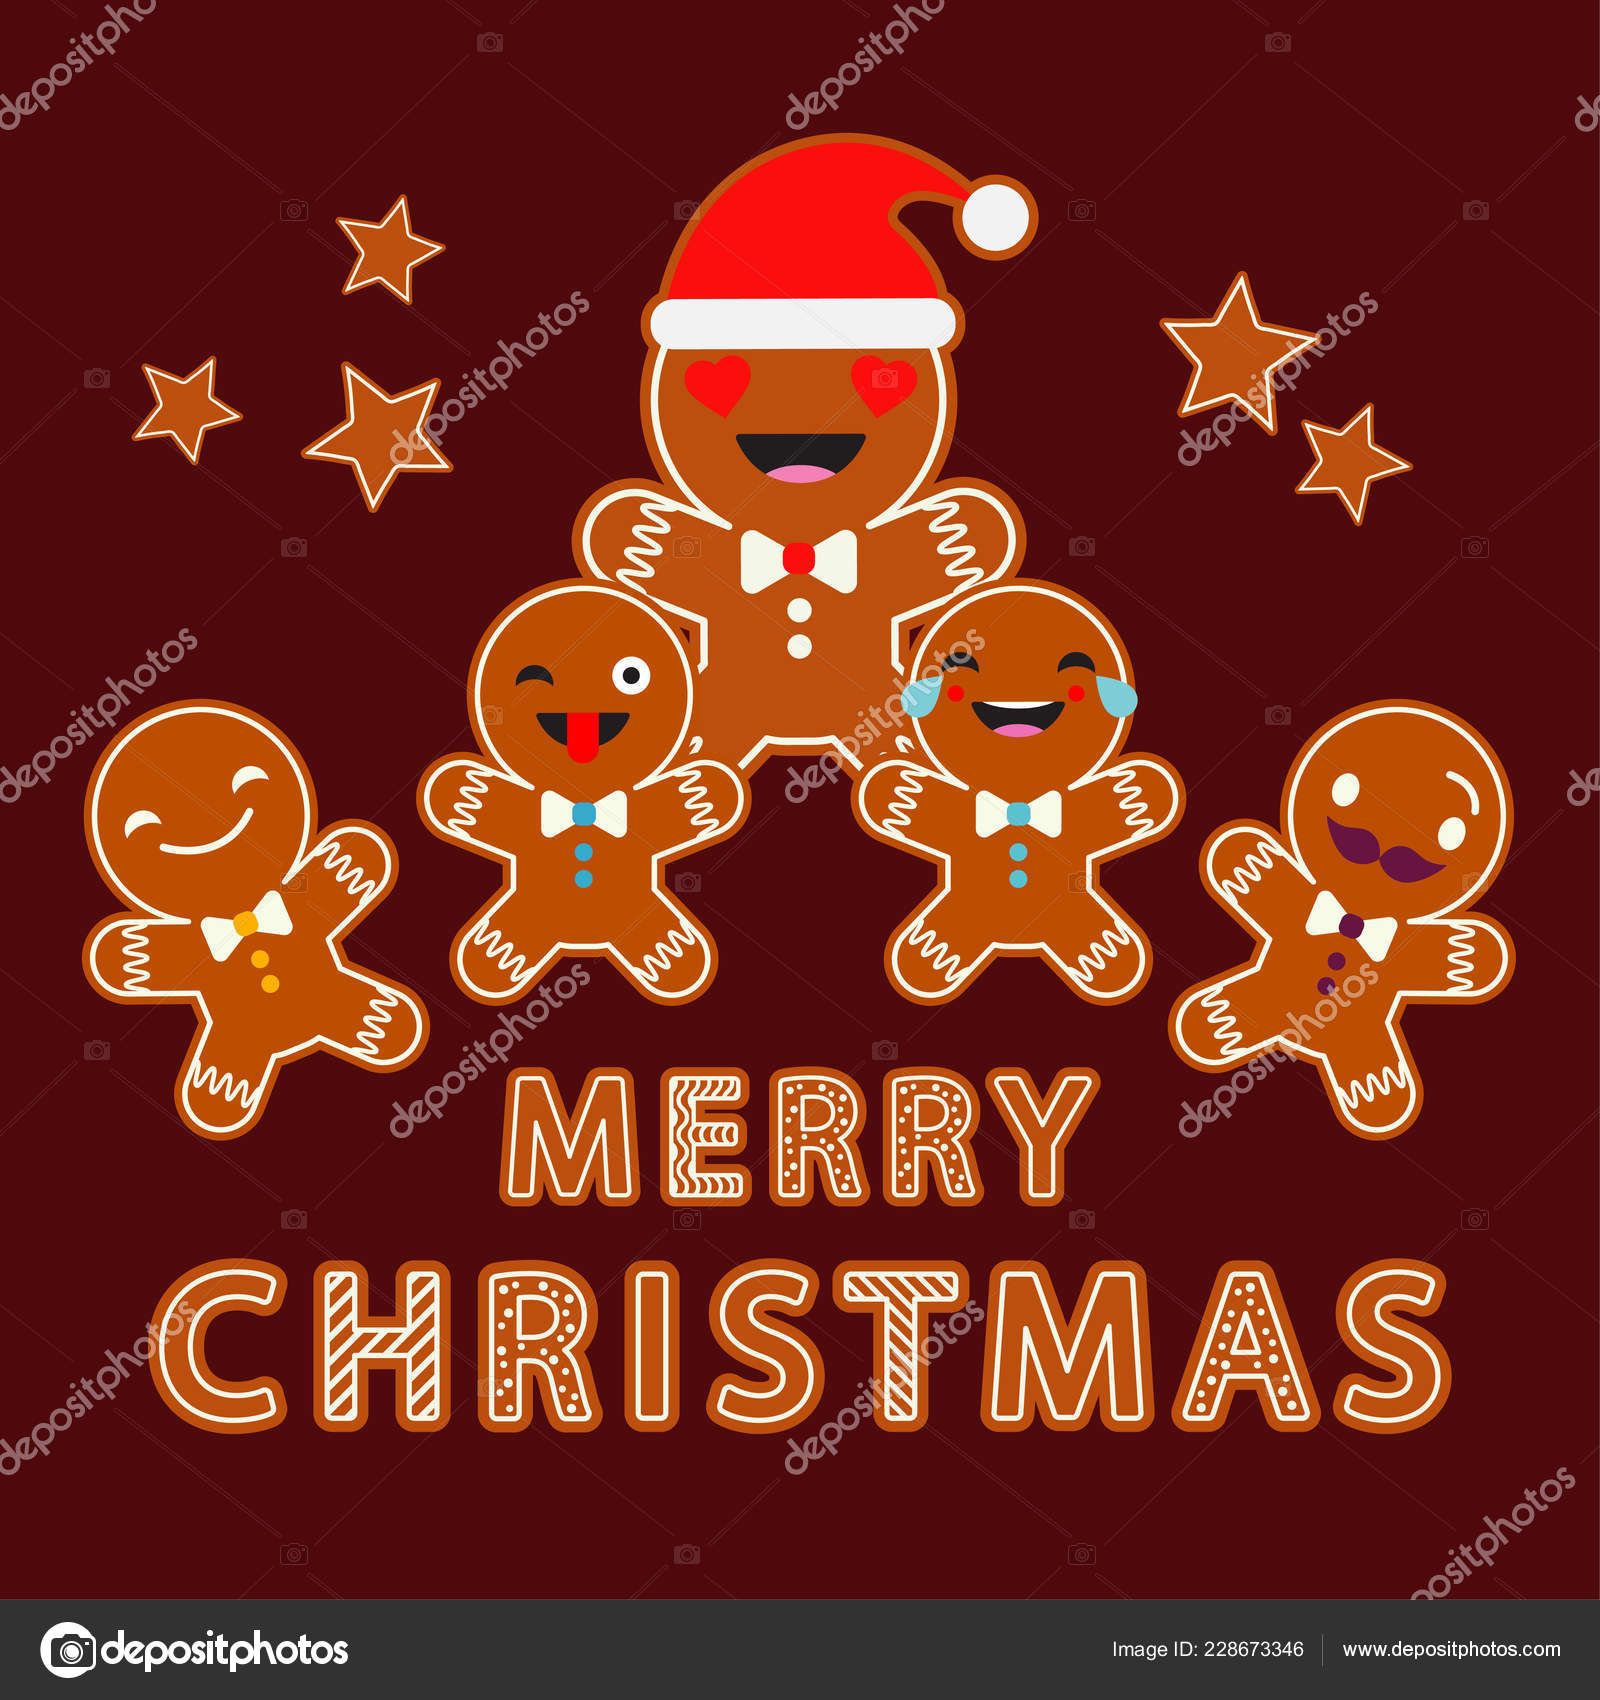 depositphotos 228673346 stock illustration gingerbread brown background christmas gingerman